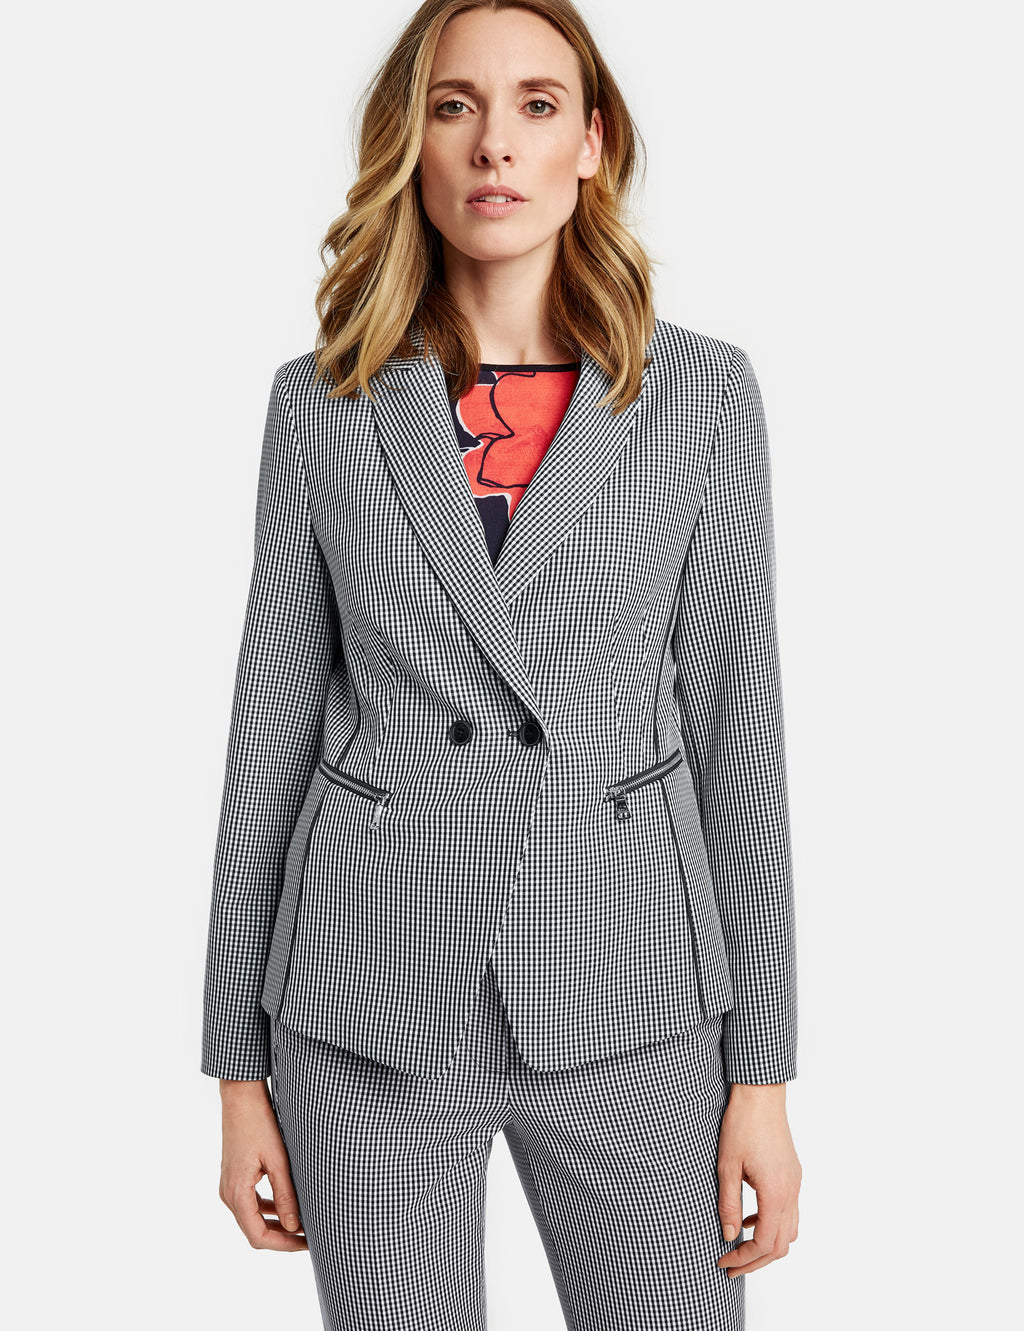 Gerry Weber Gingham Check Blazer at Jophiel